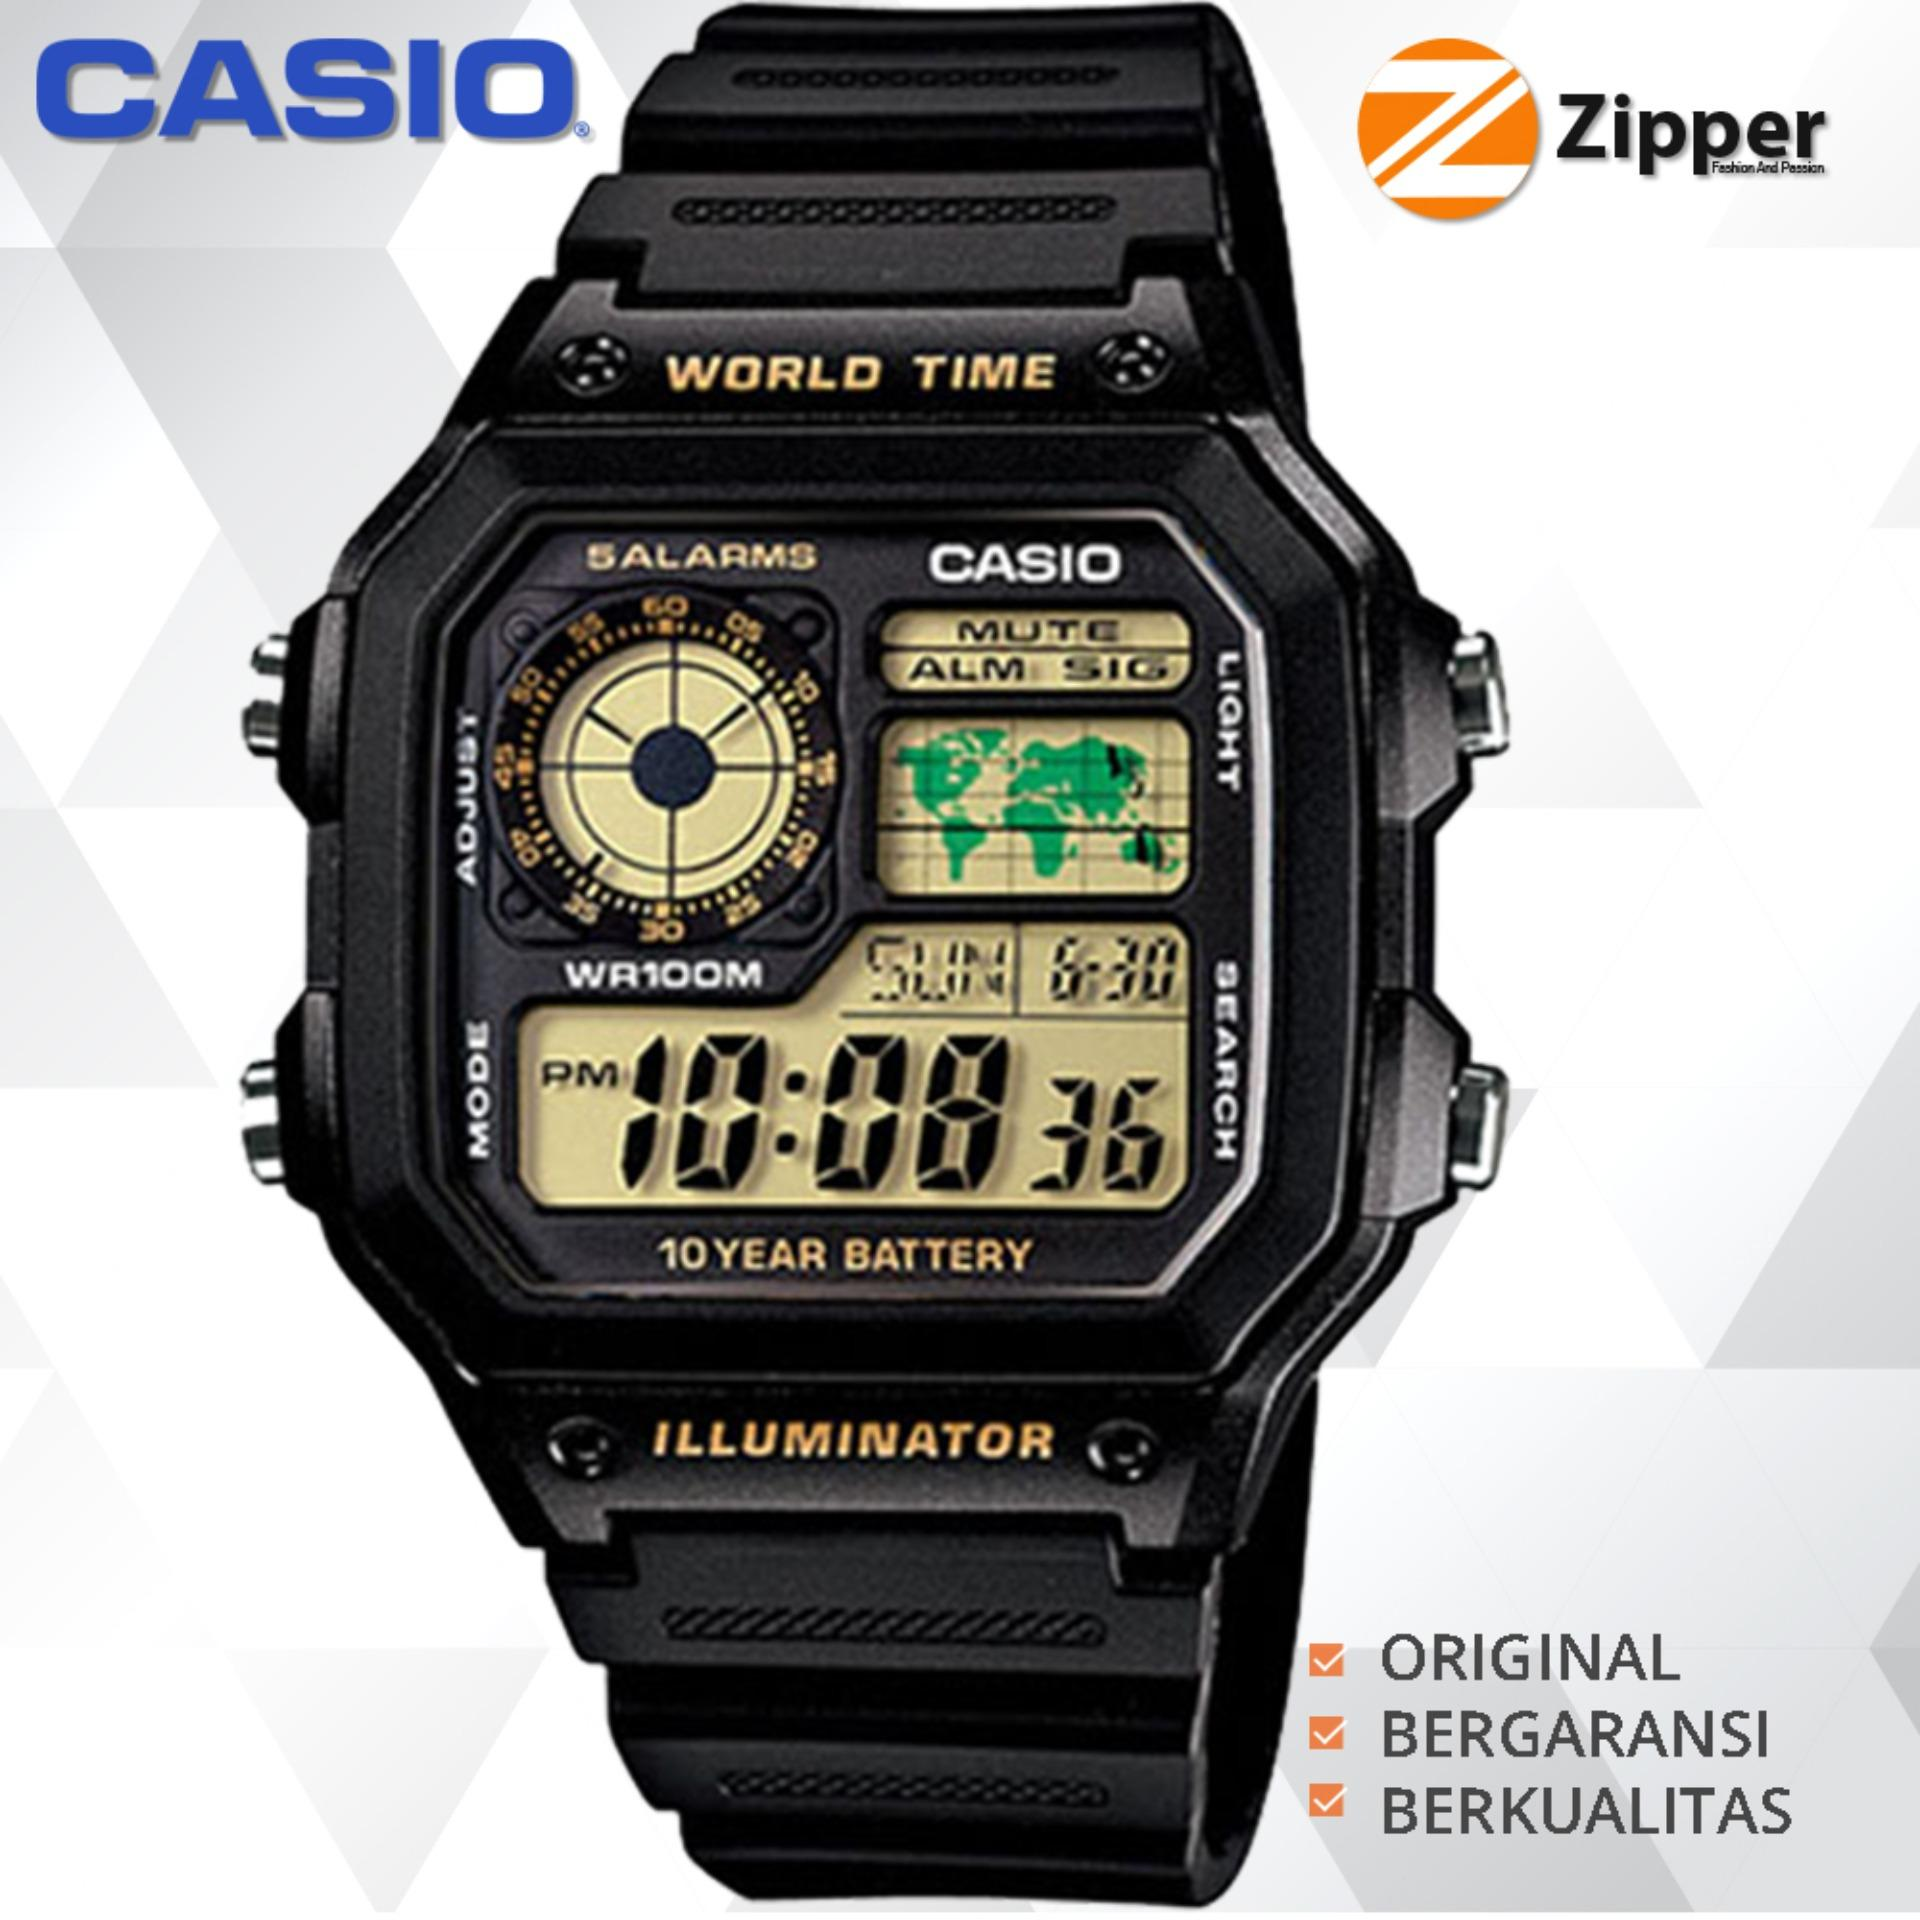 Casio Illuminator Jam Tangan Digital AE-1200WH-1BVDF Youth Series - Tali Resin